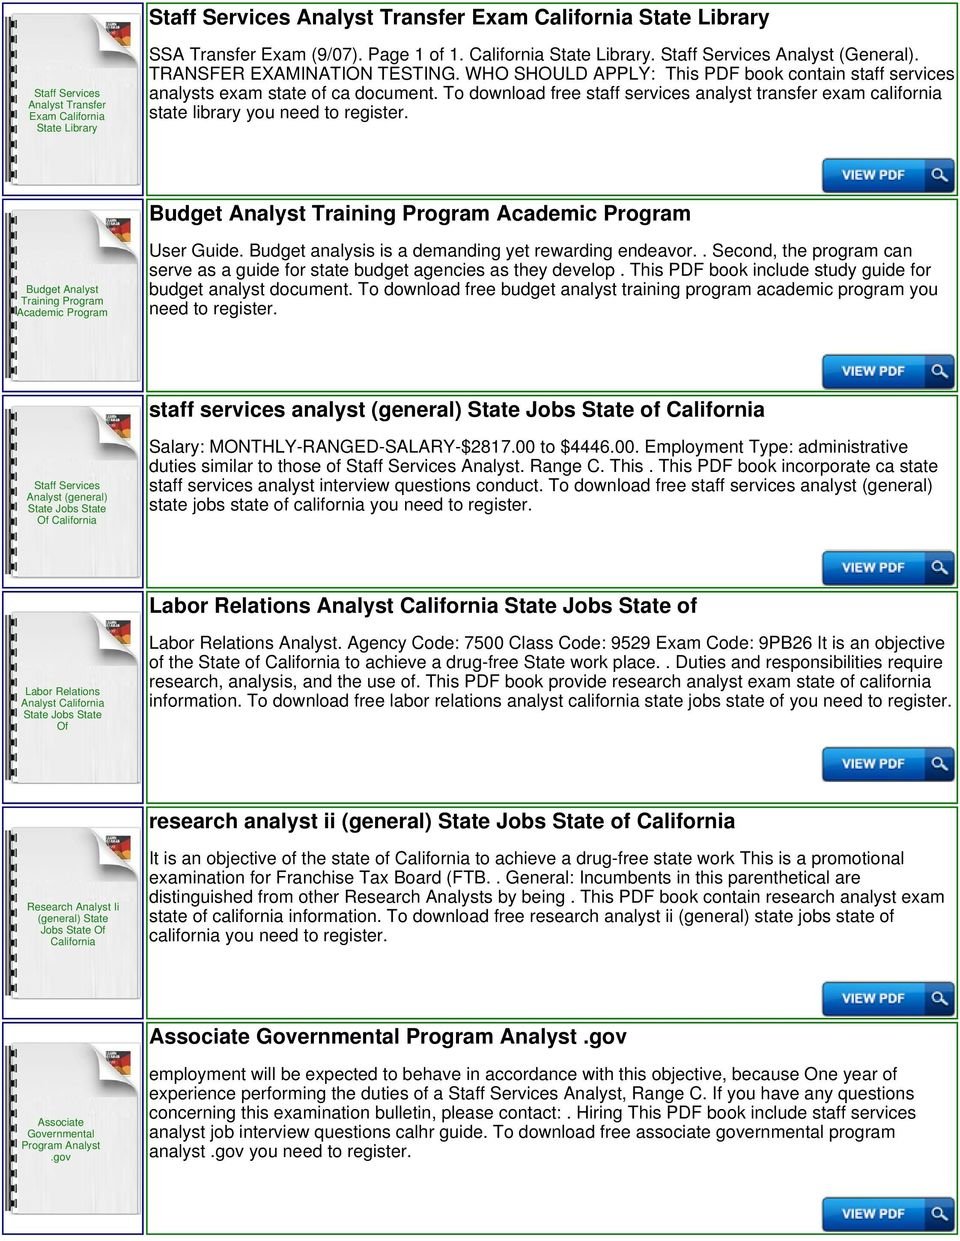 To download free staff services analyst transfer exam california state  library you need to Budget Analyst